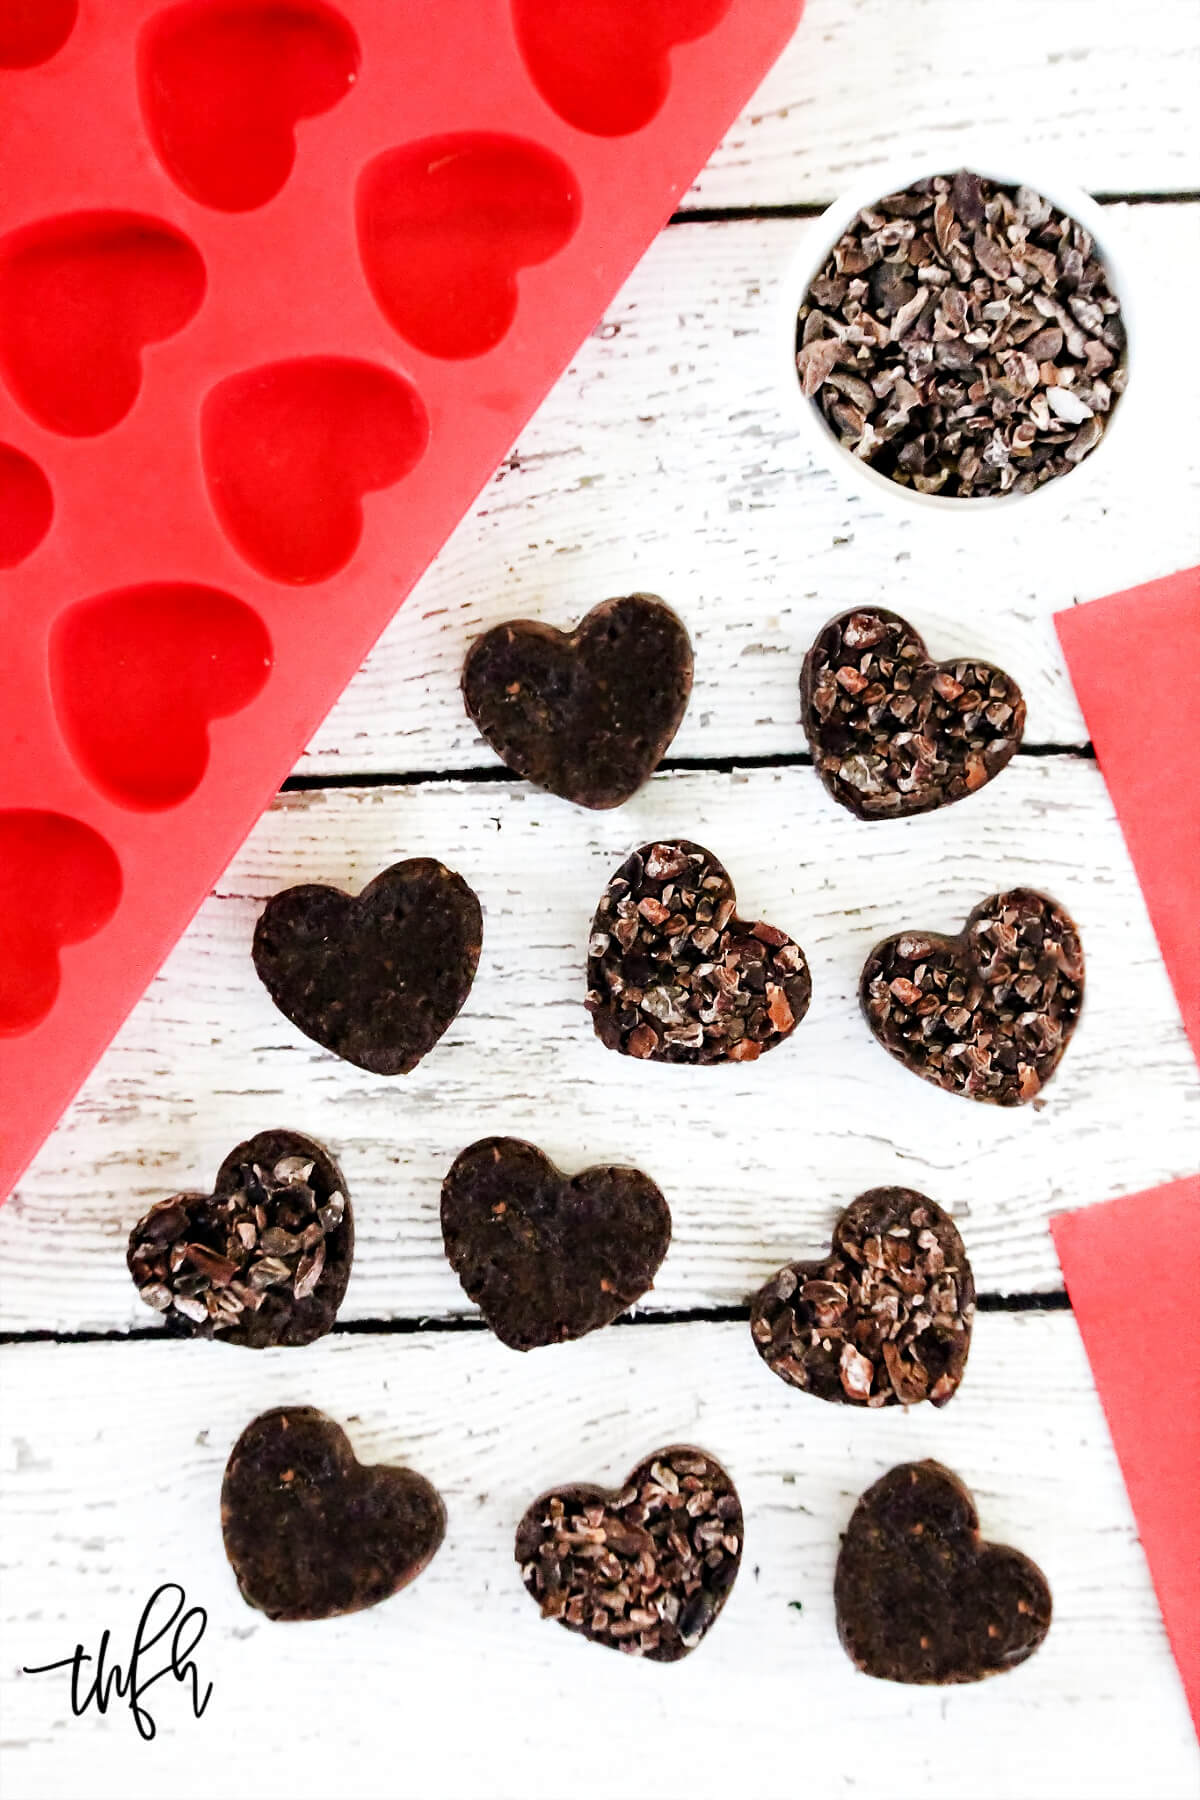 Overhead image of multiple chocolate fudge hearts scattered on a white weathered wooden surface next to a red silicone heart mold